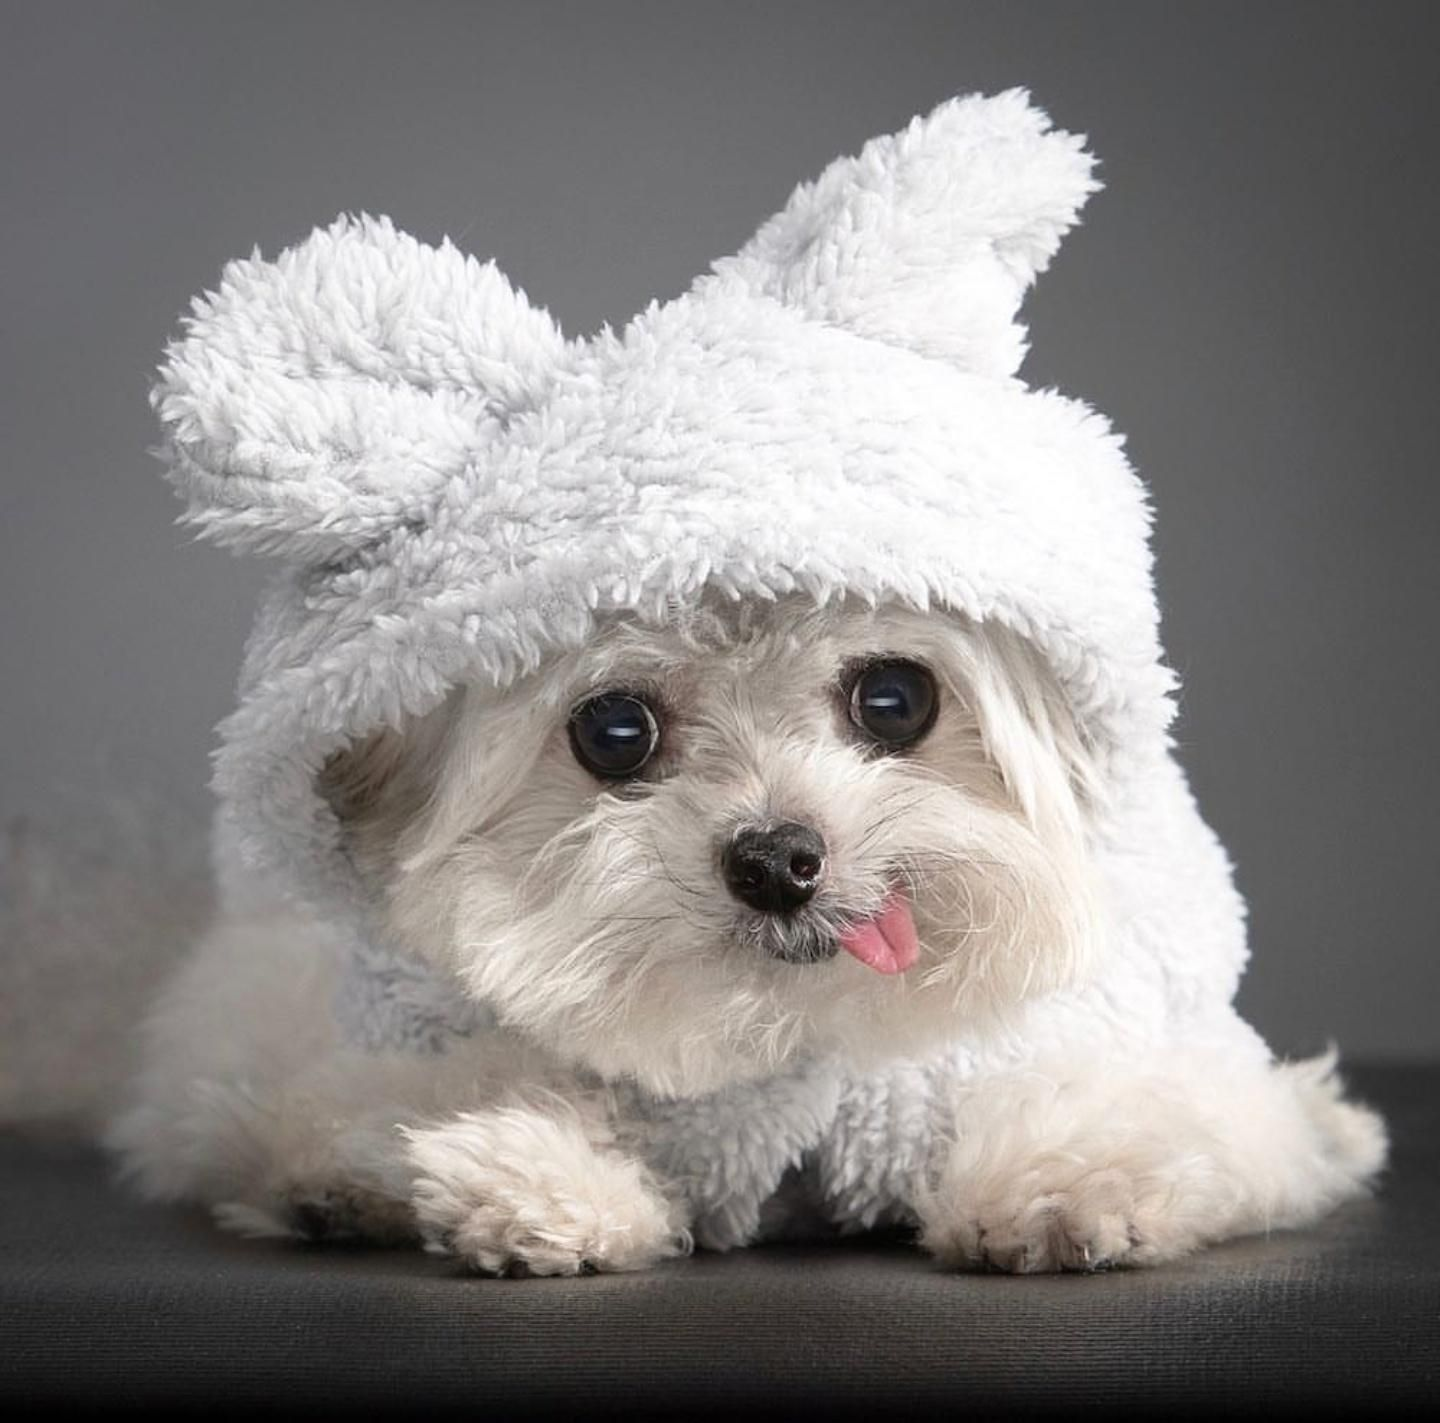 Cute animal photos baby animals pictures cute baby animals